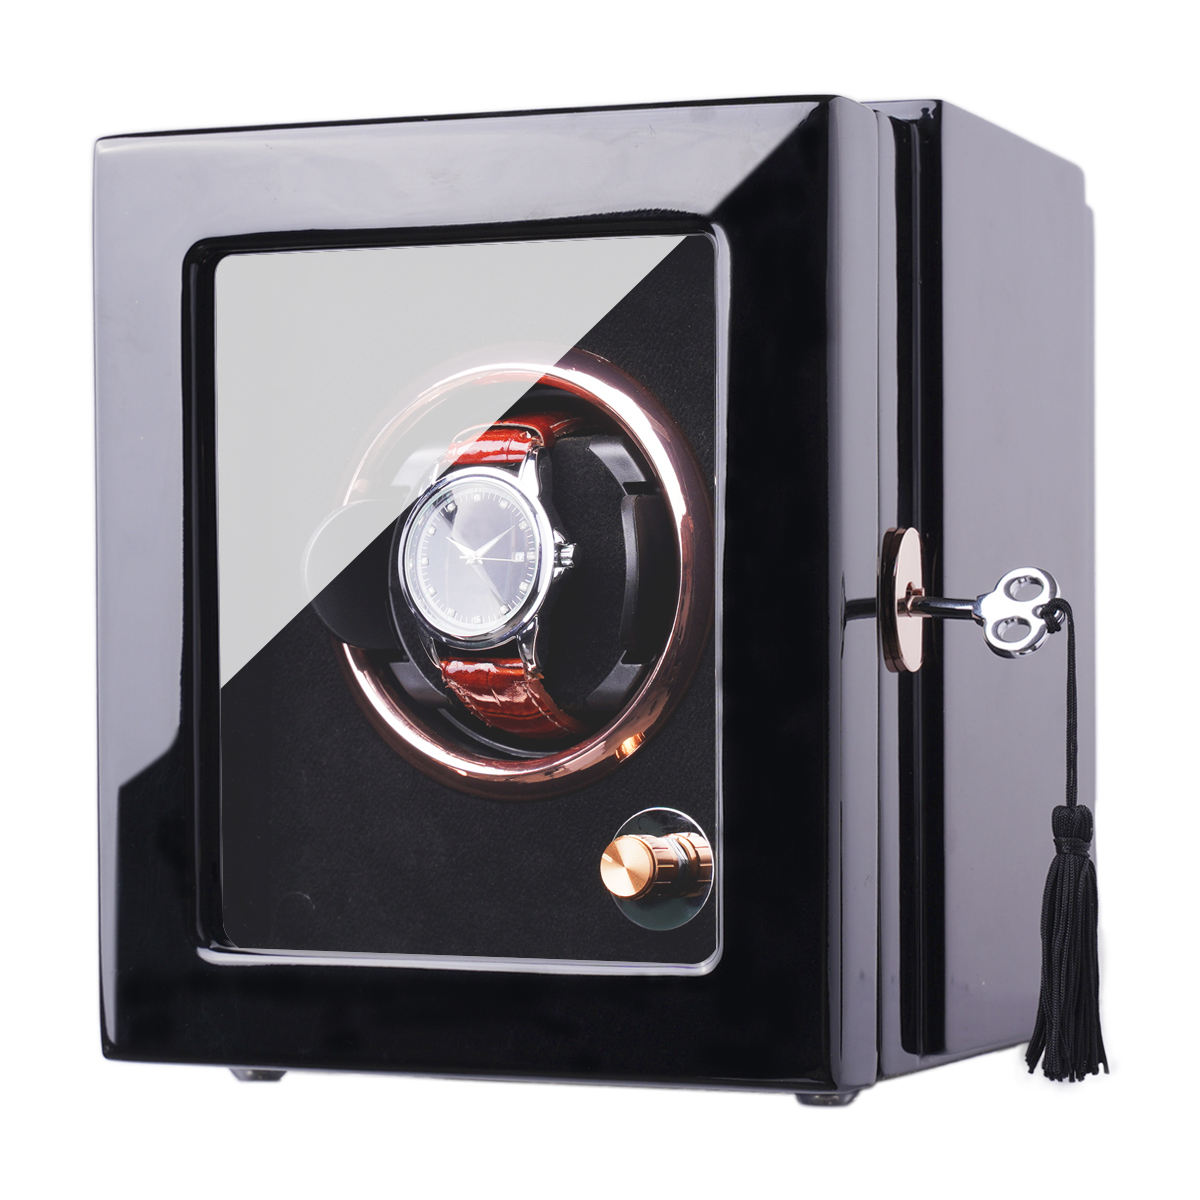 Luxury Time Partner Single Watch Winder 1 Slot Electronic Automatic Watch Winder Safe Watch Motor Shaker Box